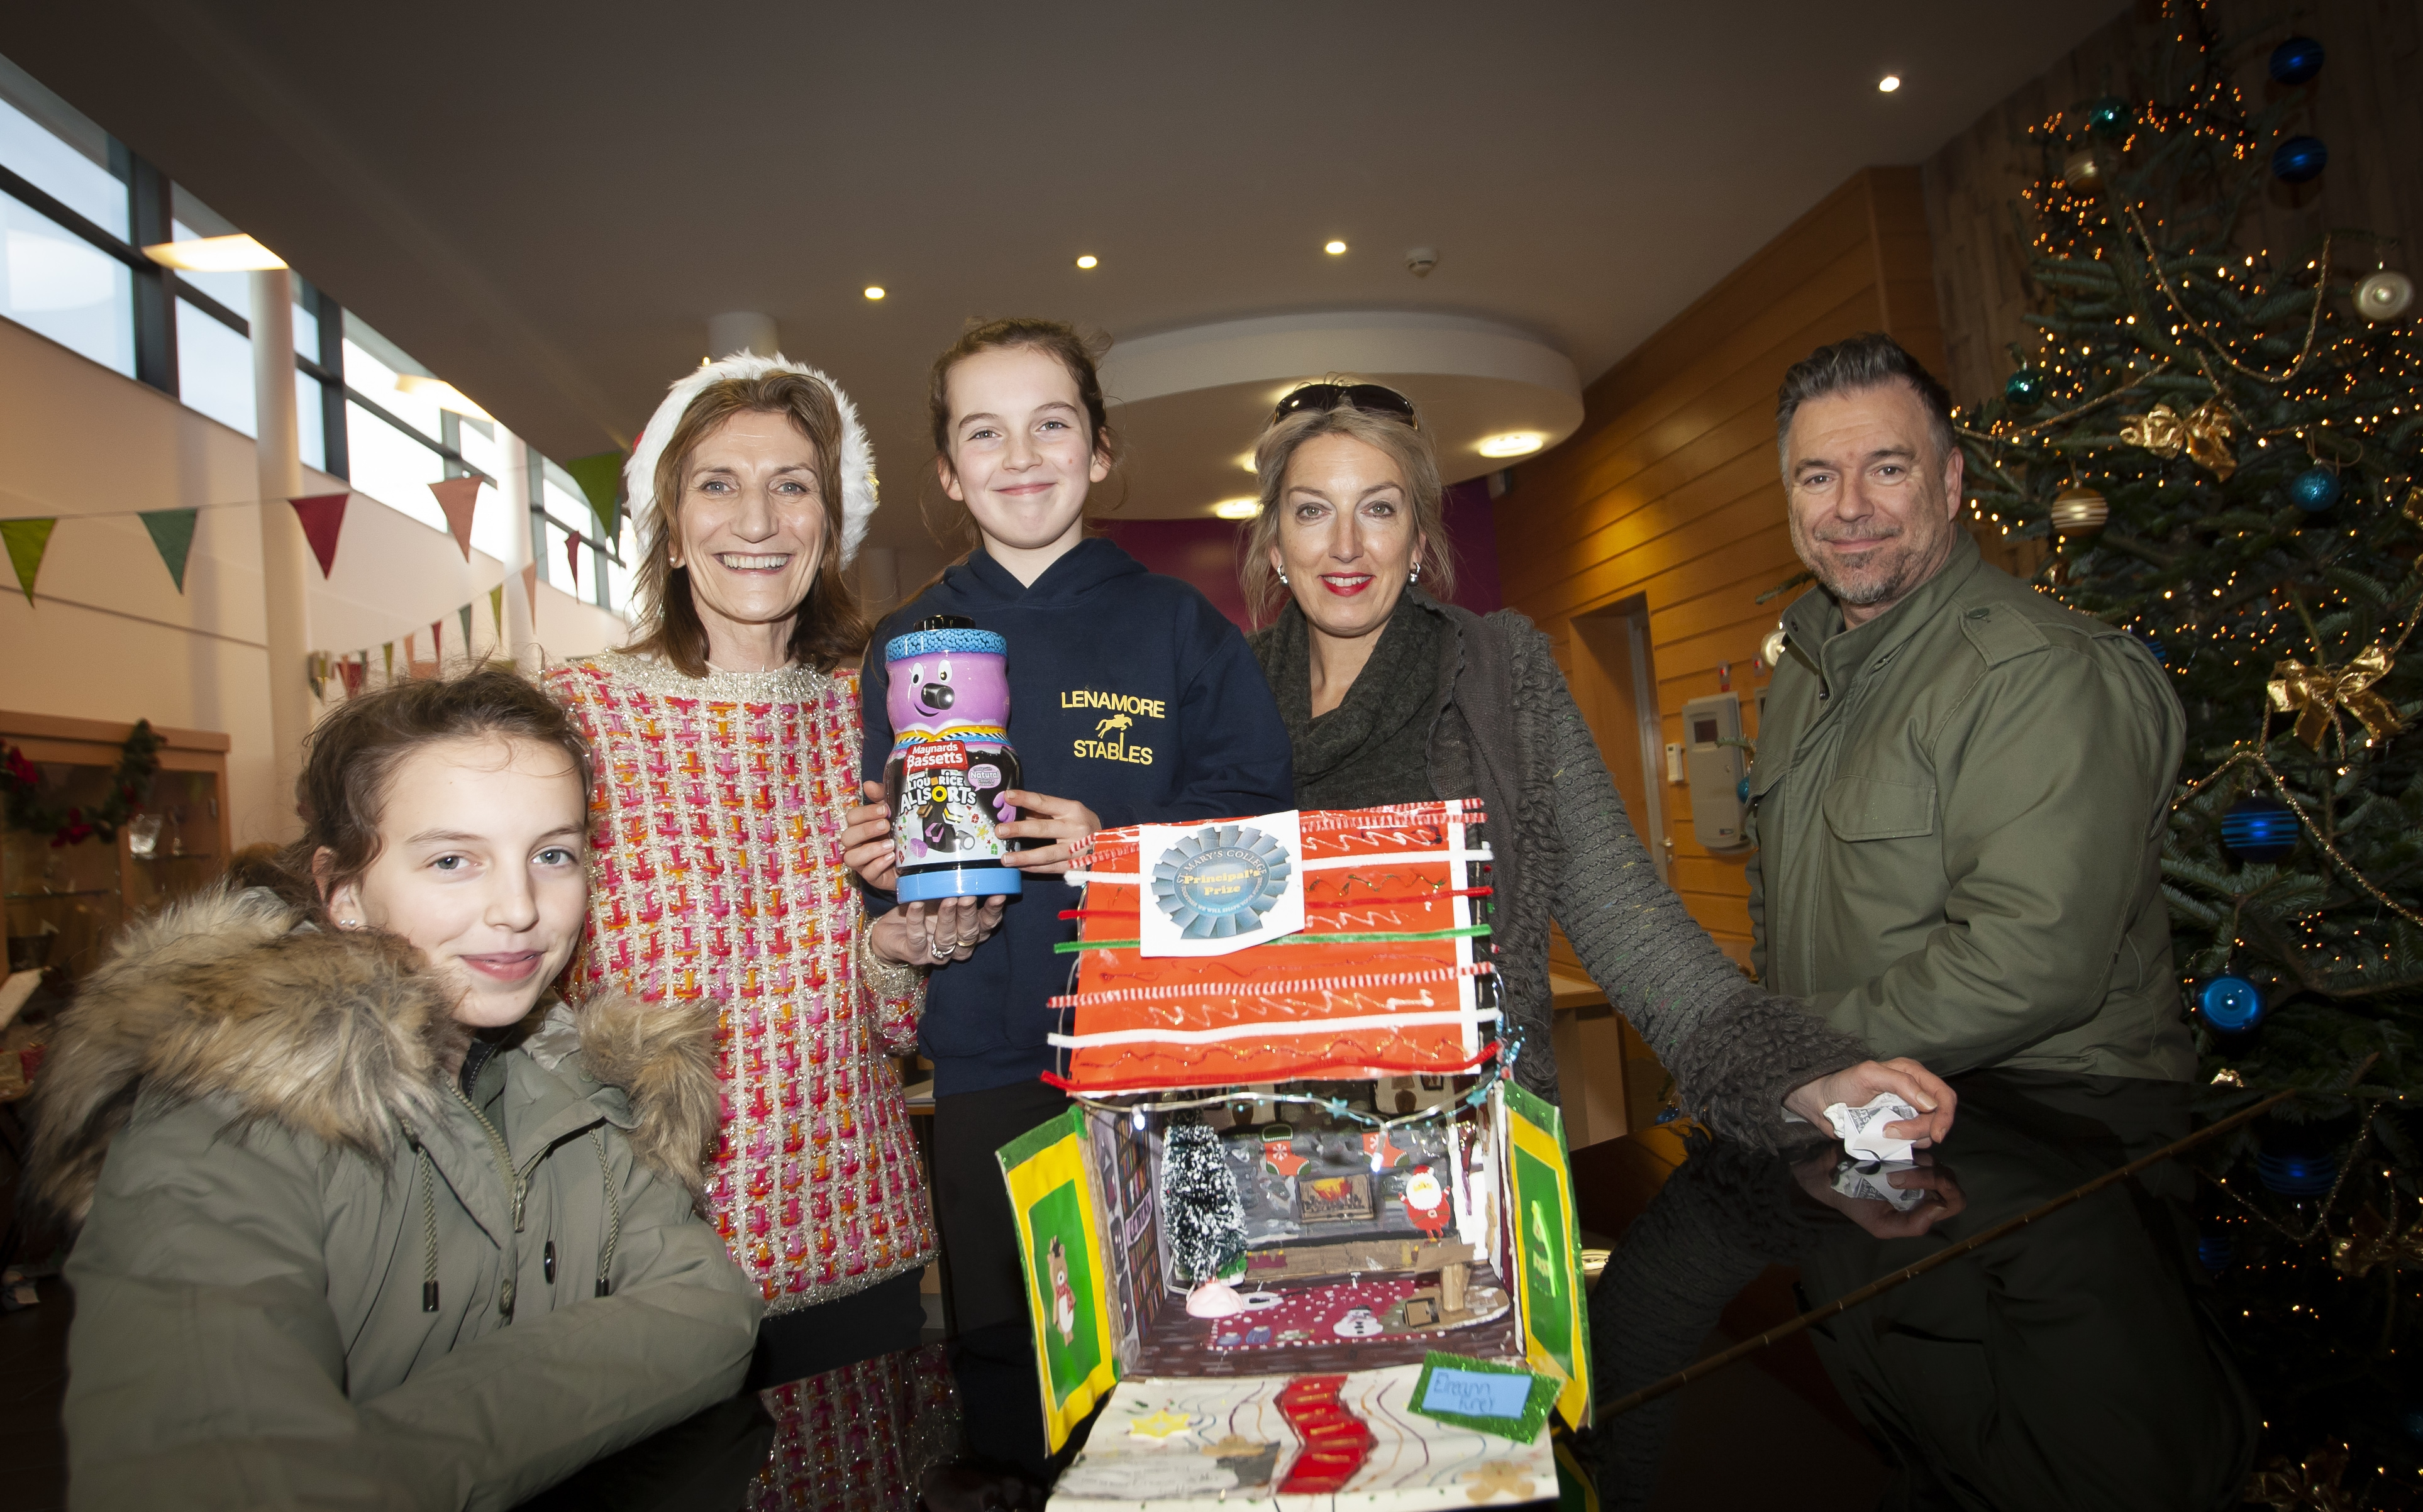 Miss Eireann Furey (10) pictured receiving her prize from Mrs. Marie Lindsay, Principal, St. Mary's College during Saturday's Craft Fair at the school. Included are Eireann's parents Sean and Michelle and sister Tara (14).